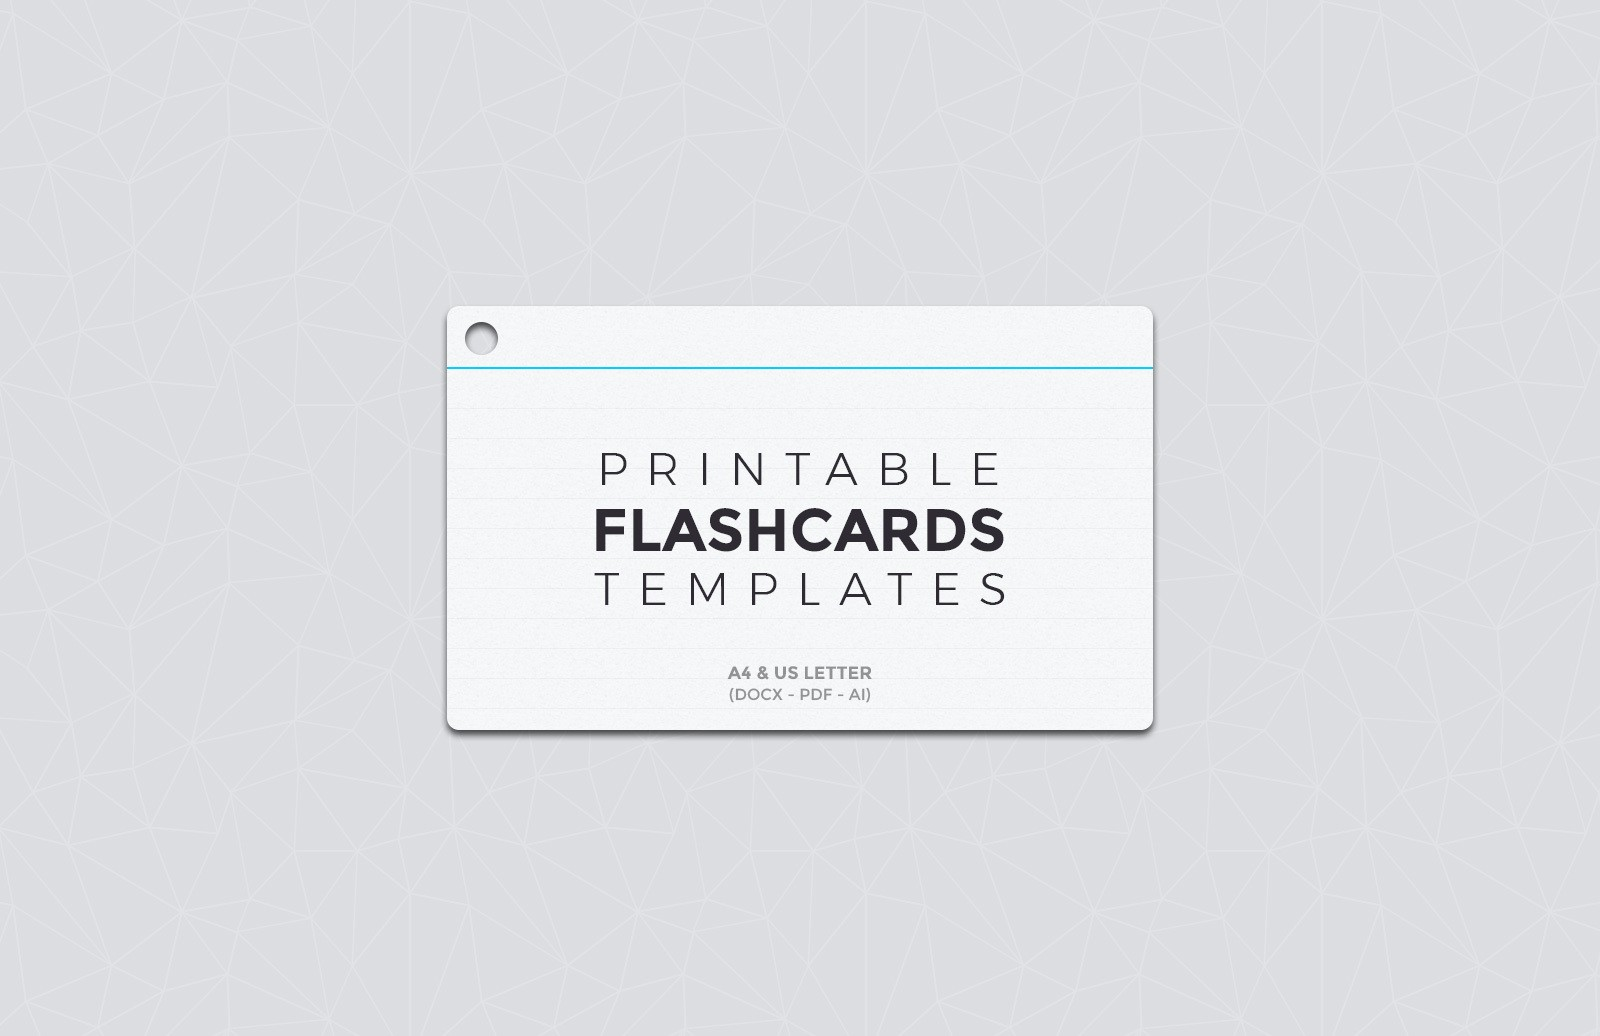 Free Printable Flashcard Templates